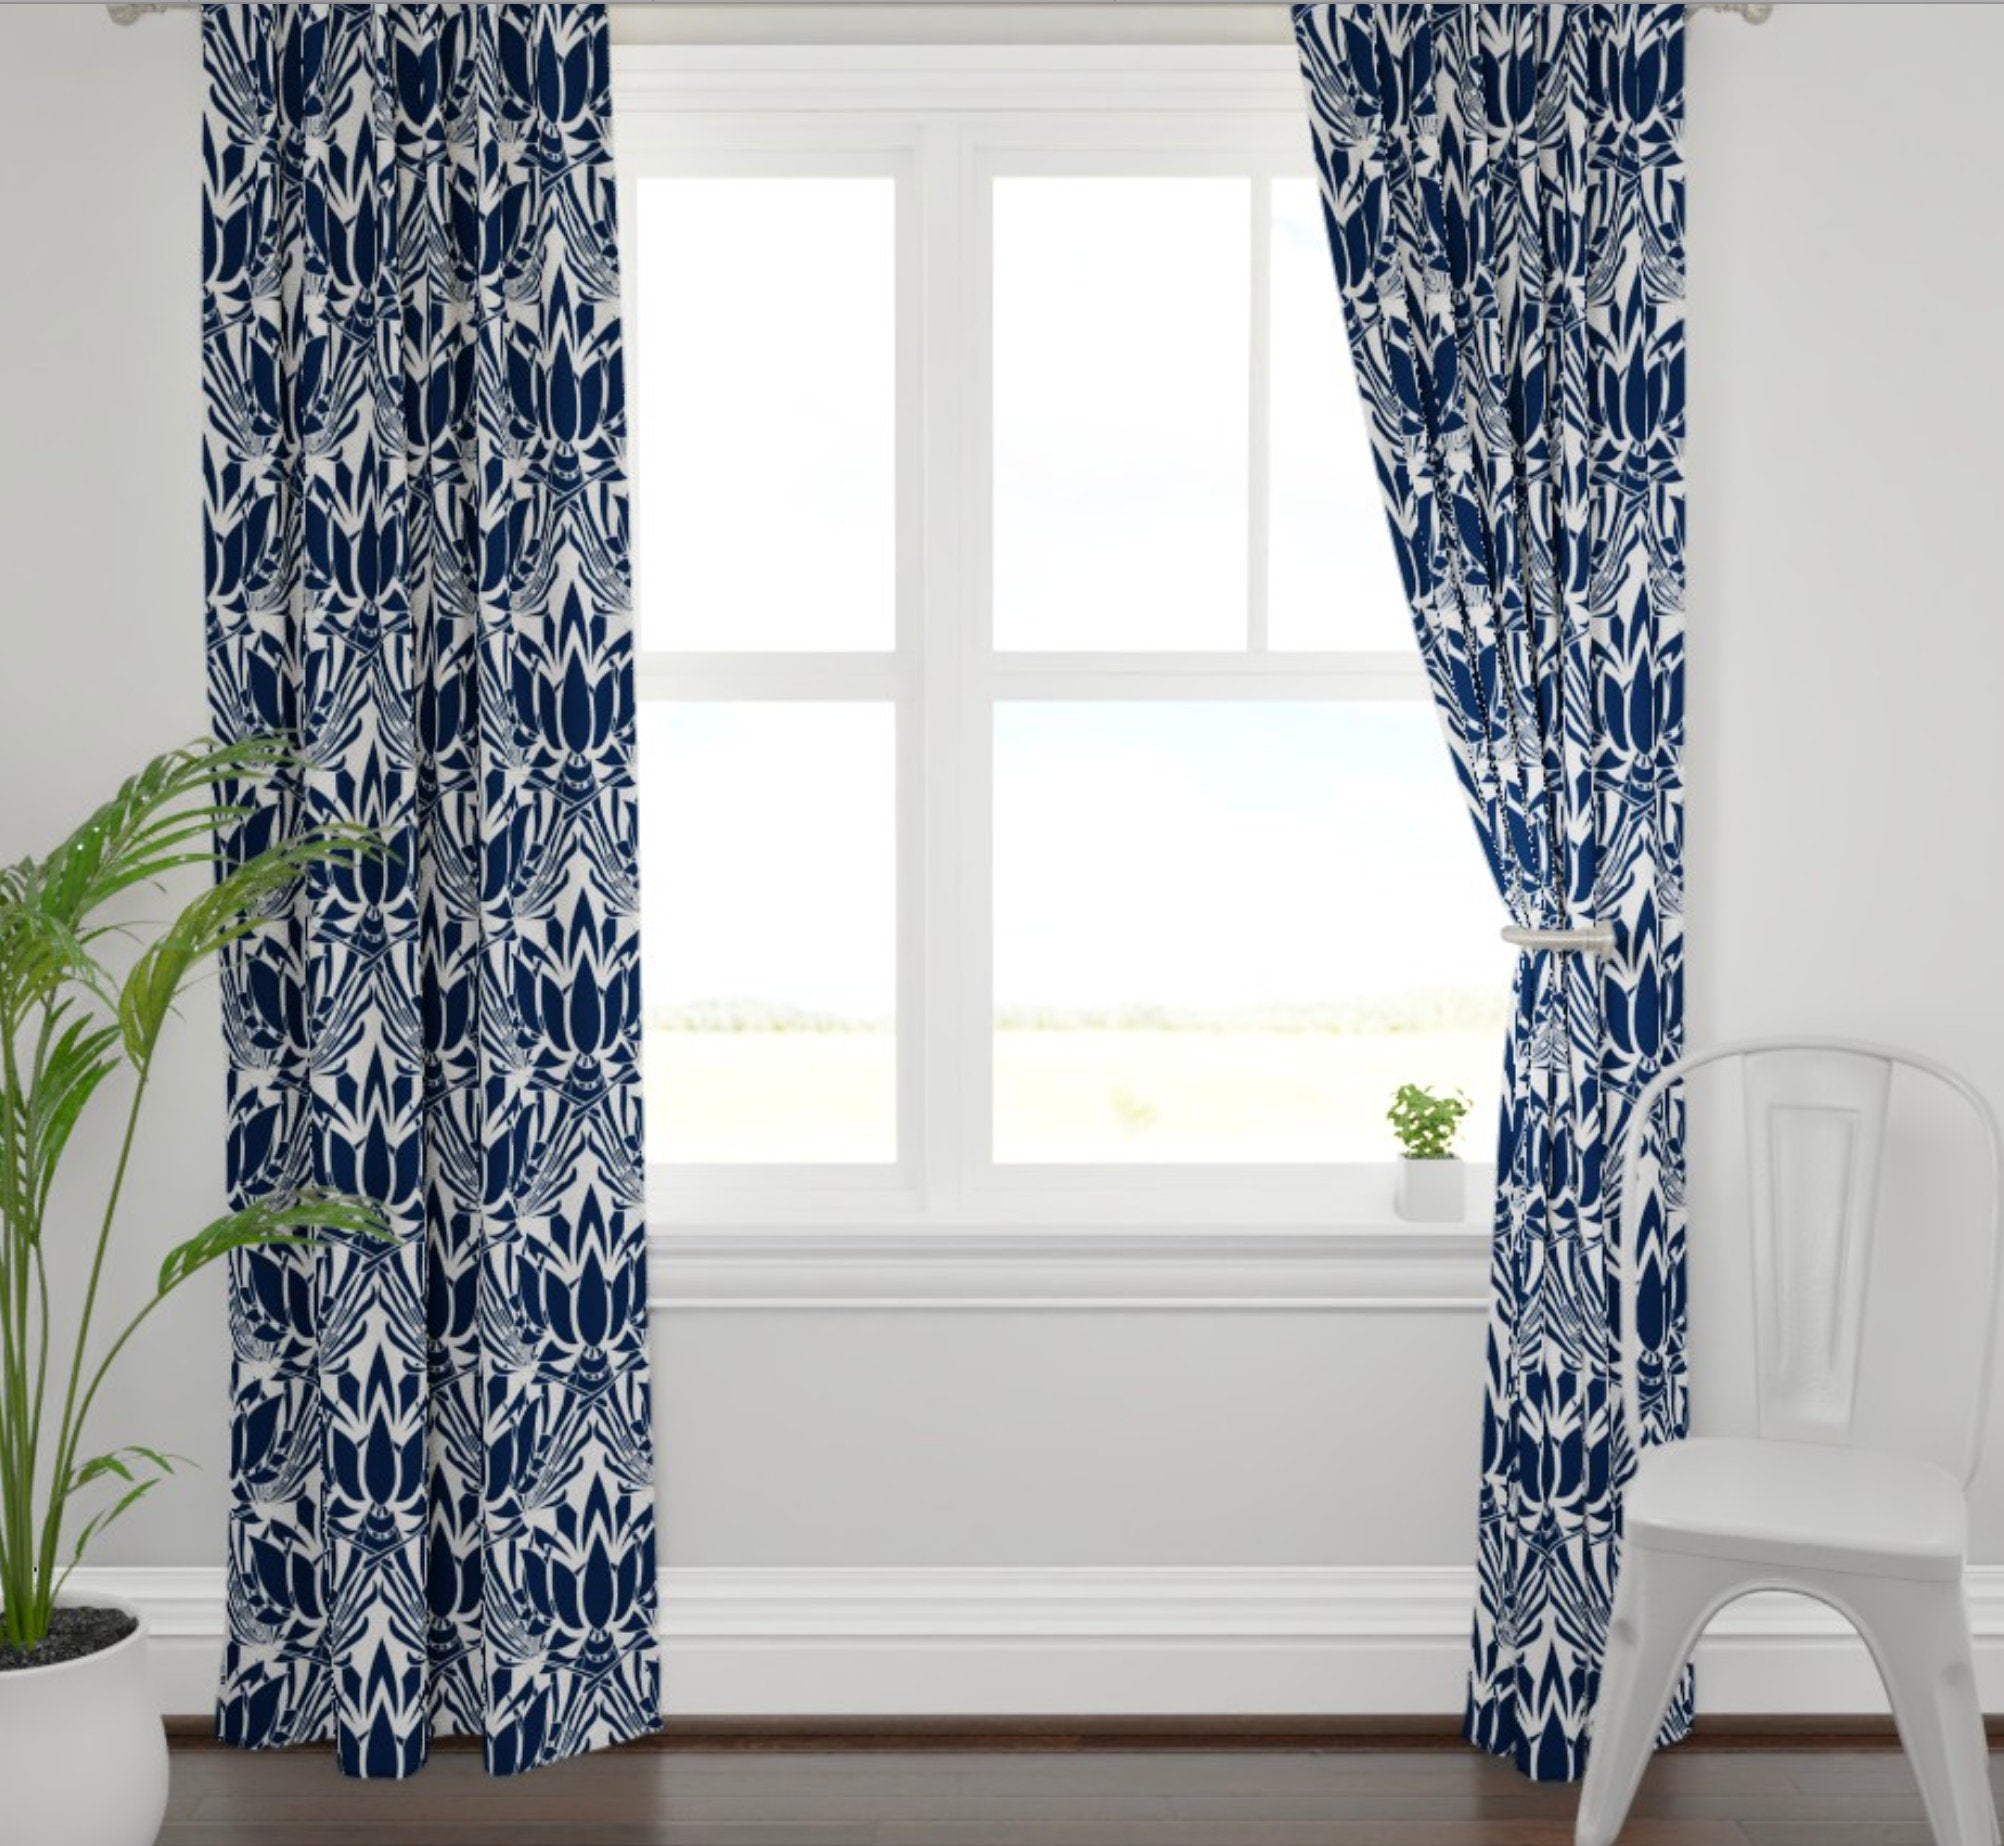 Lotus print curtains navy curtains dining room curtains navy living